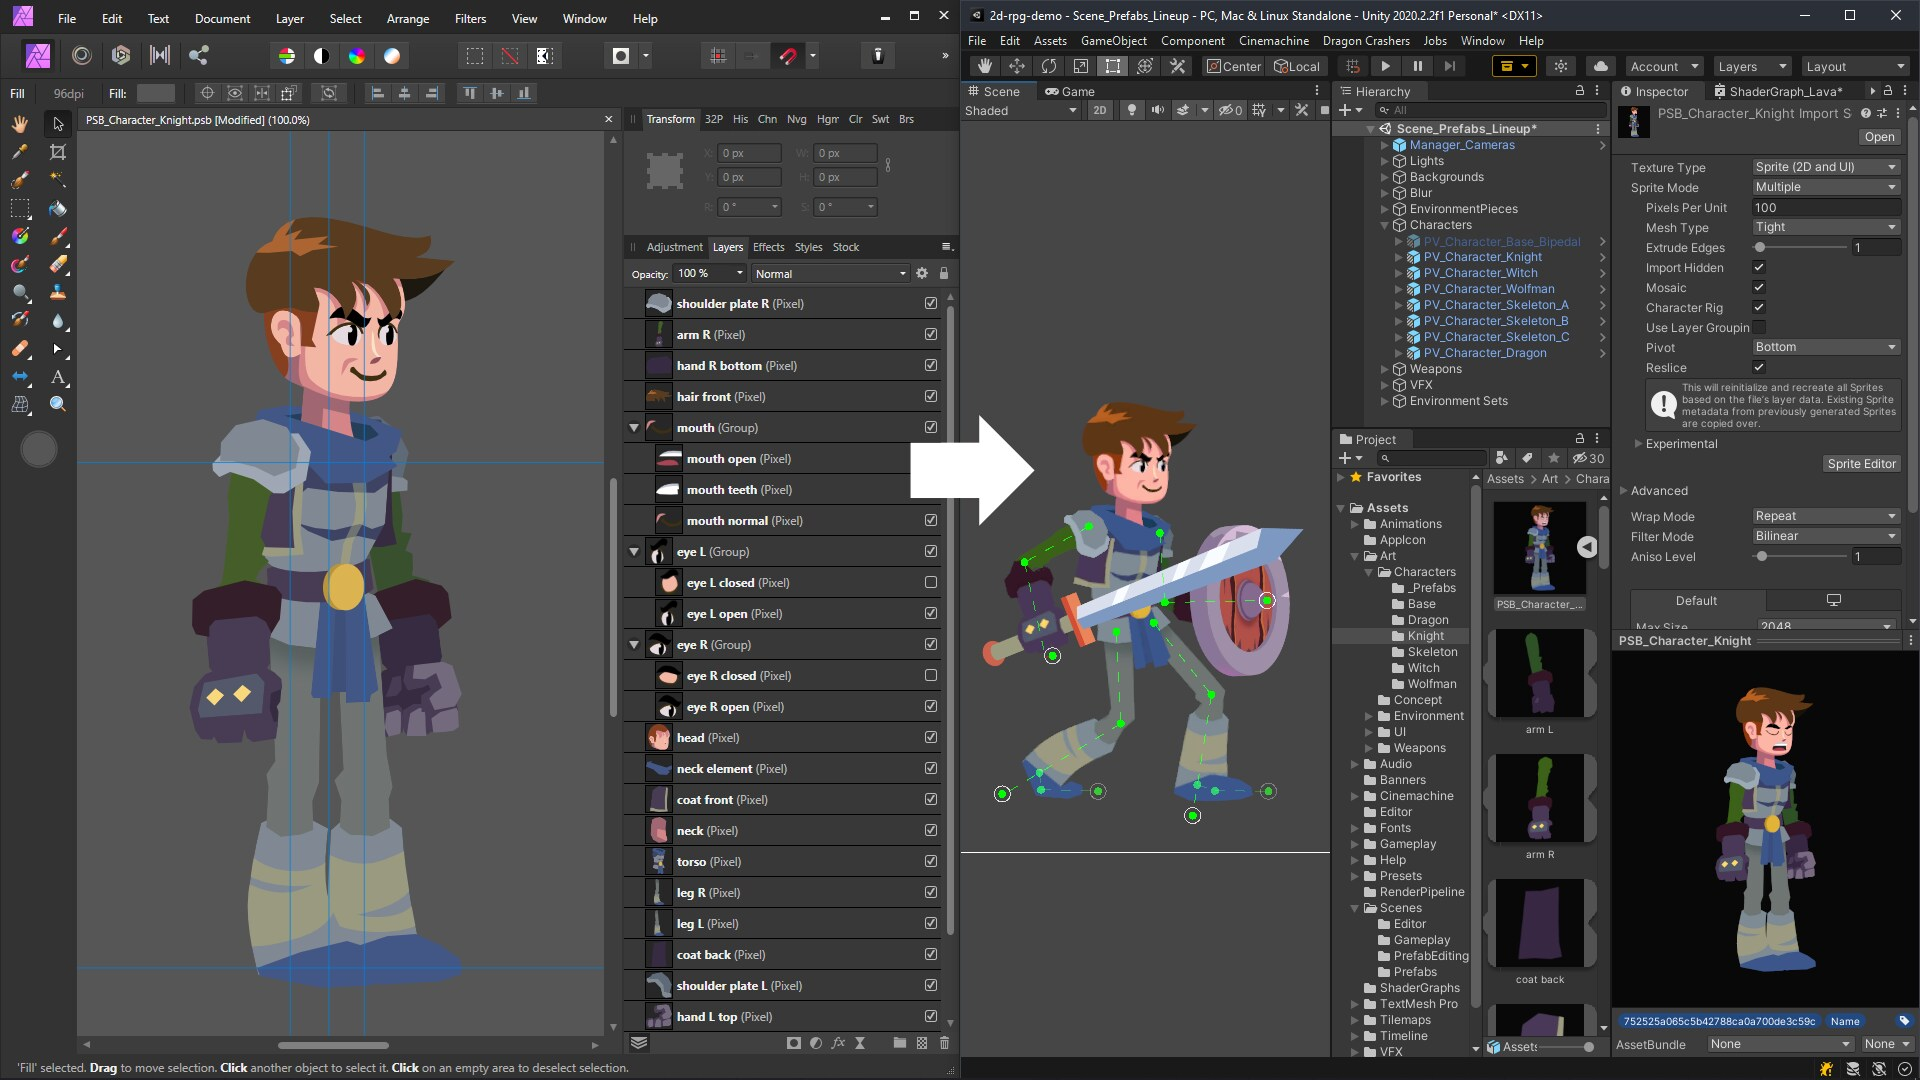 Conserving the layers information from Affinity Photo to Unity